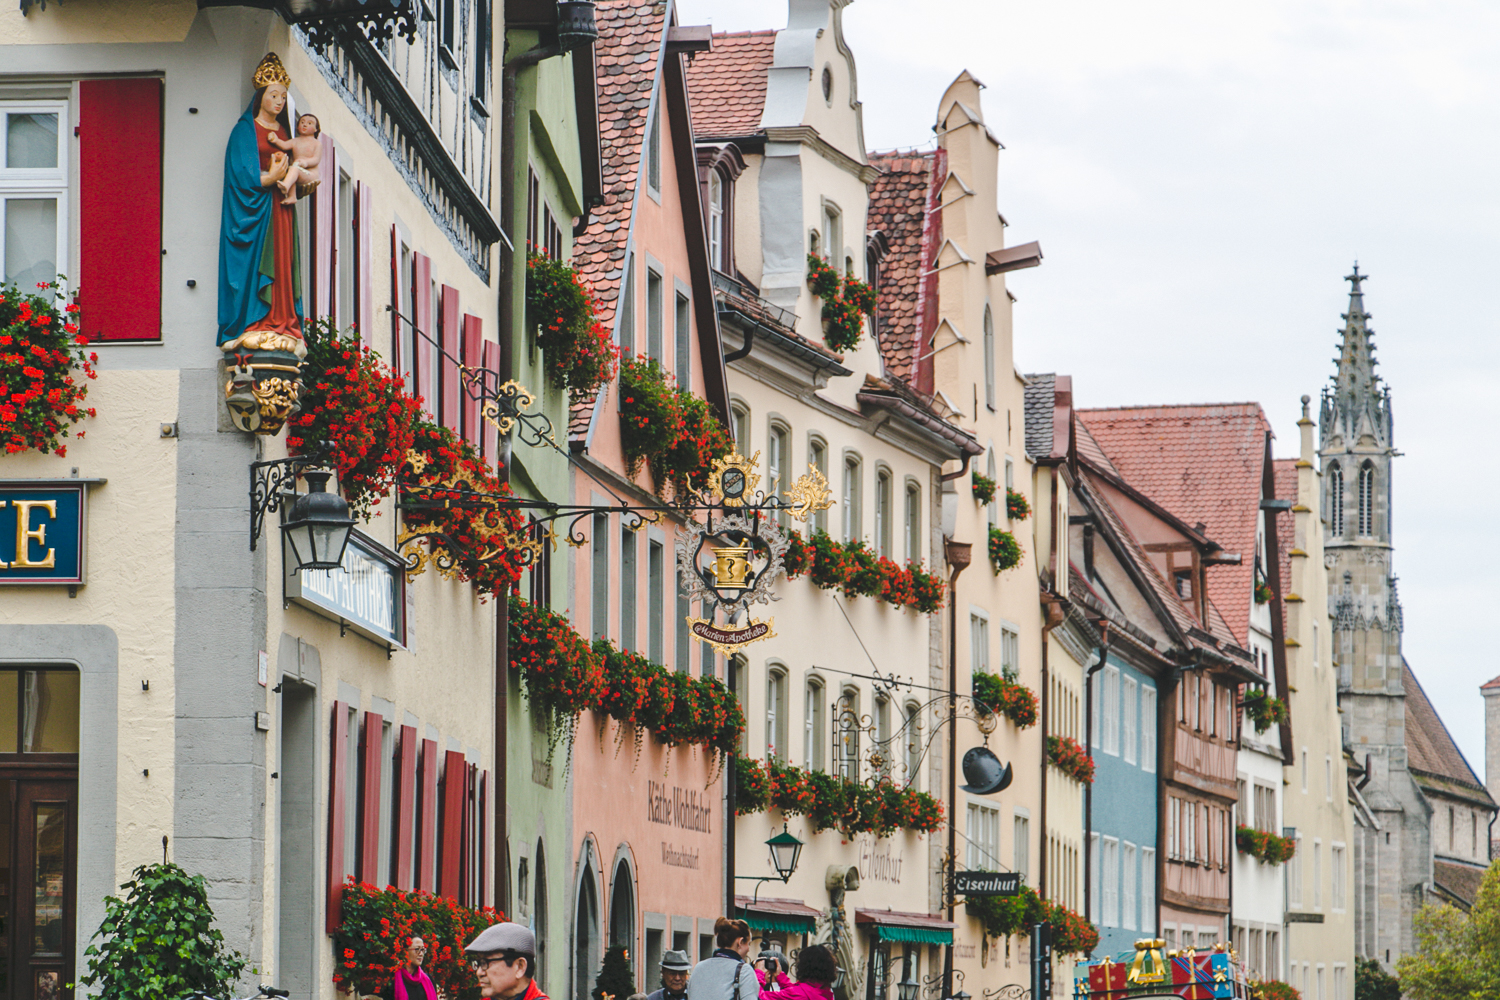 Rothenburg Ob Der Tauber Germany  city photos gallery : Rothenburg Ob Der Tauber, Germany 6396